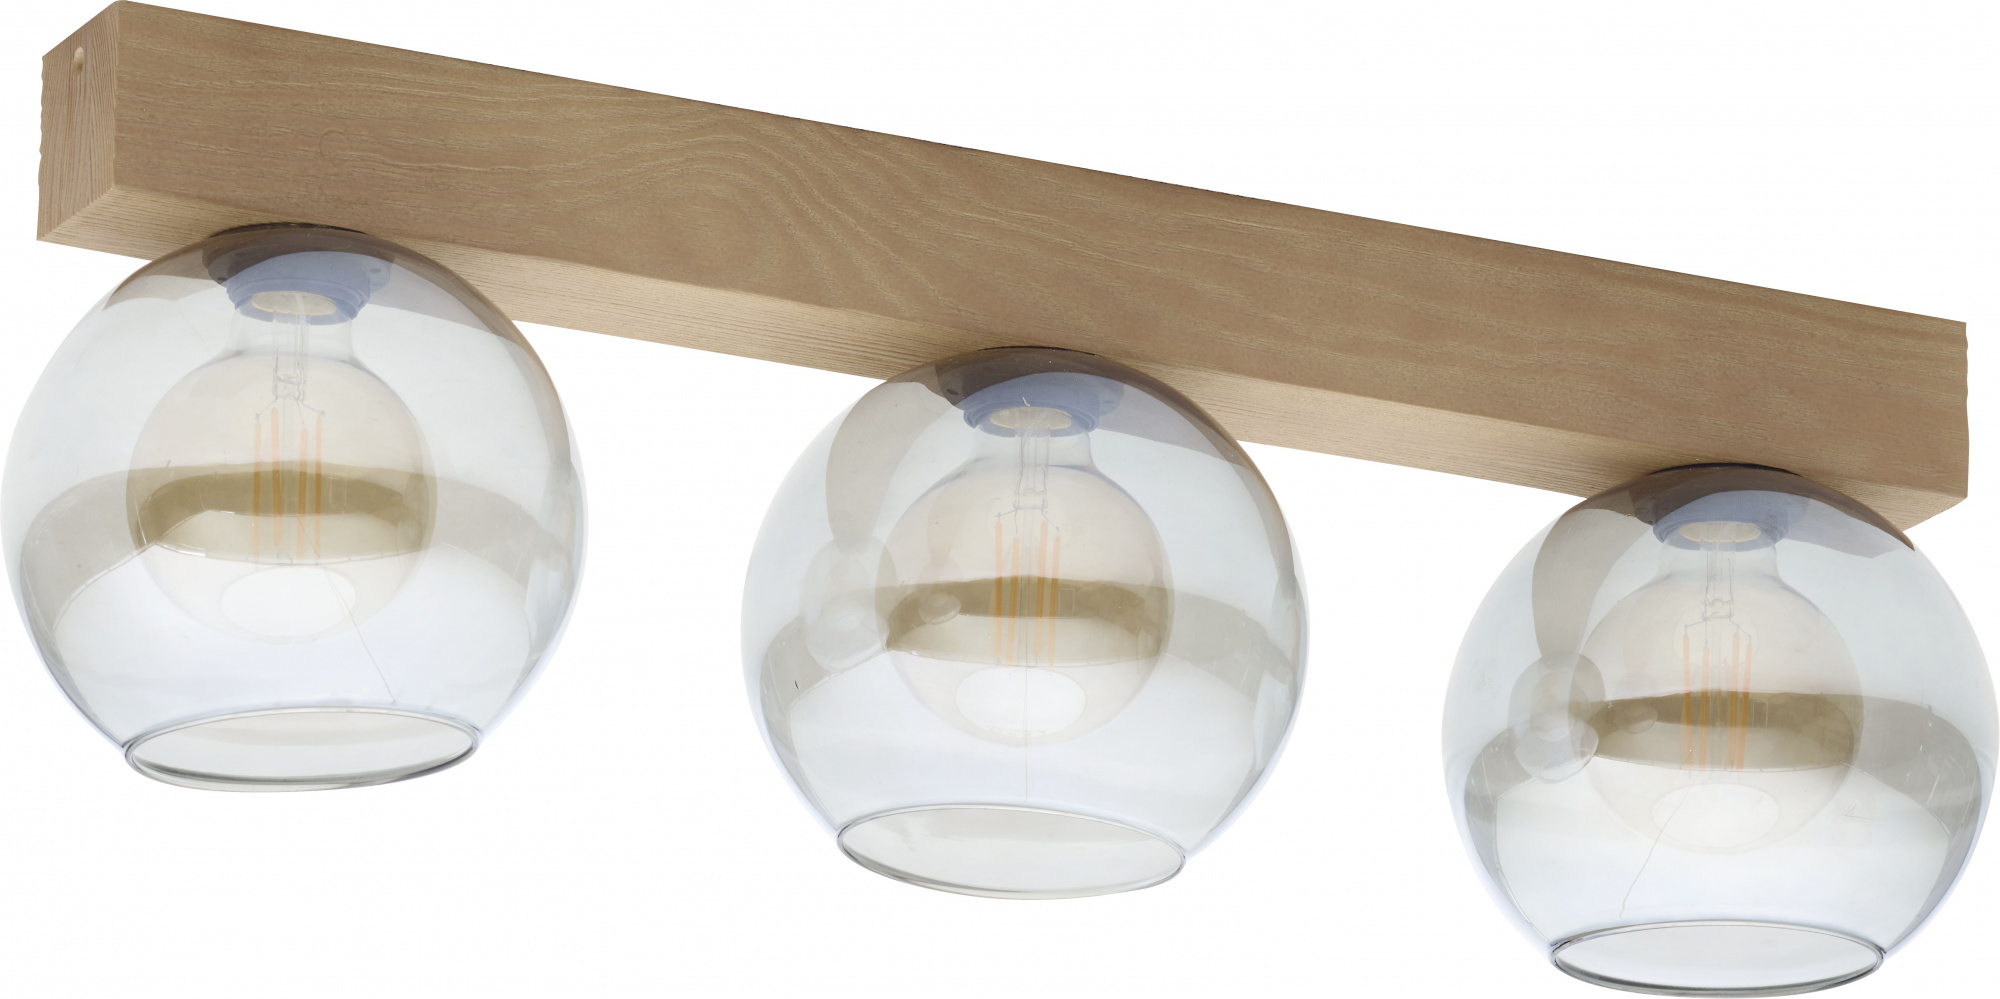 TK Lighting TK-4256 Artwood Glass mennyezeti lámpa